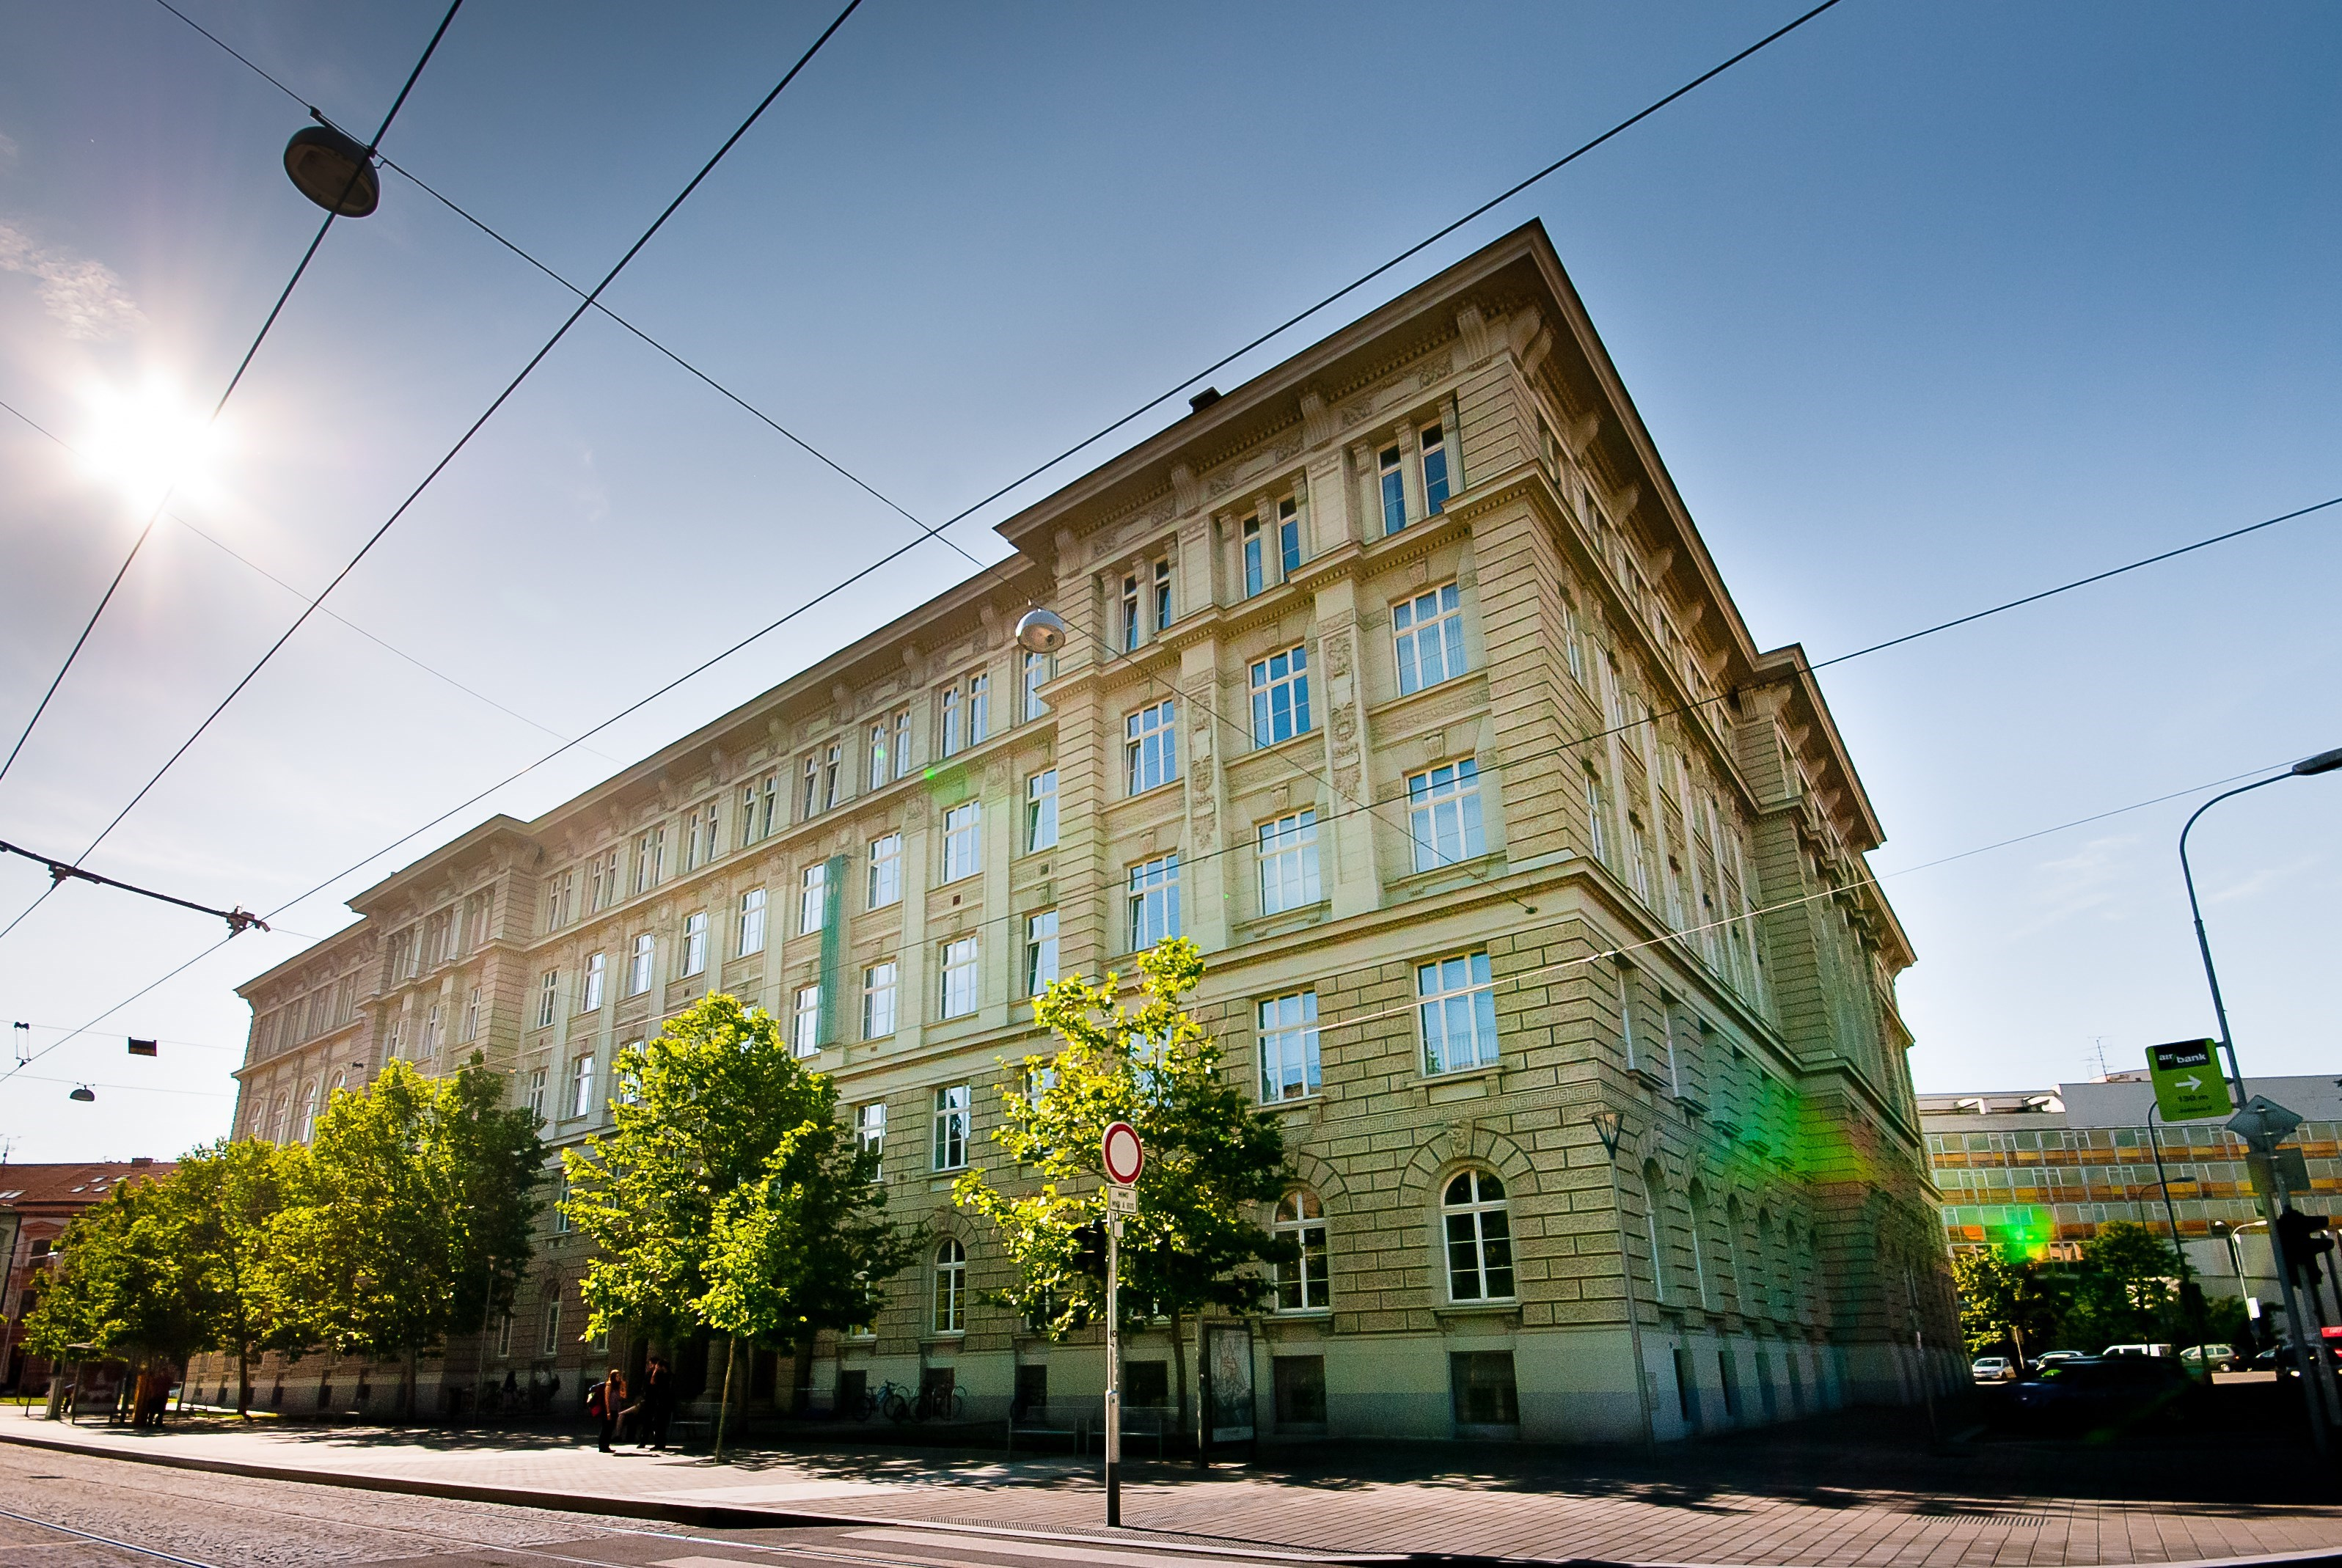 Conference venue: Faculty of Social Studies, Brno